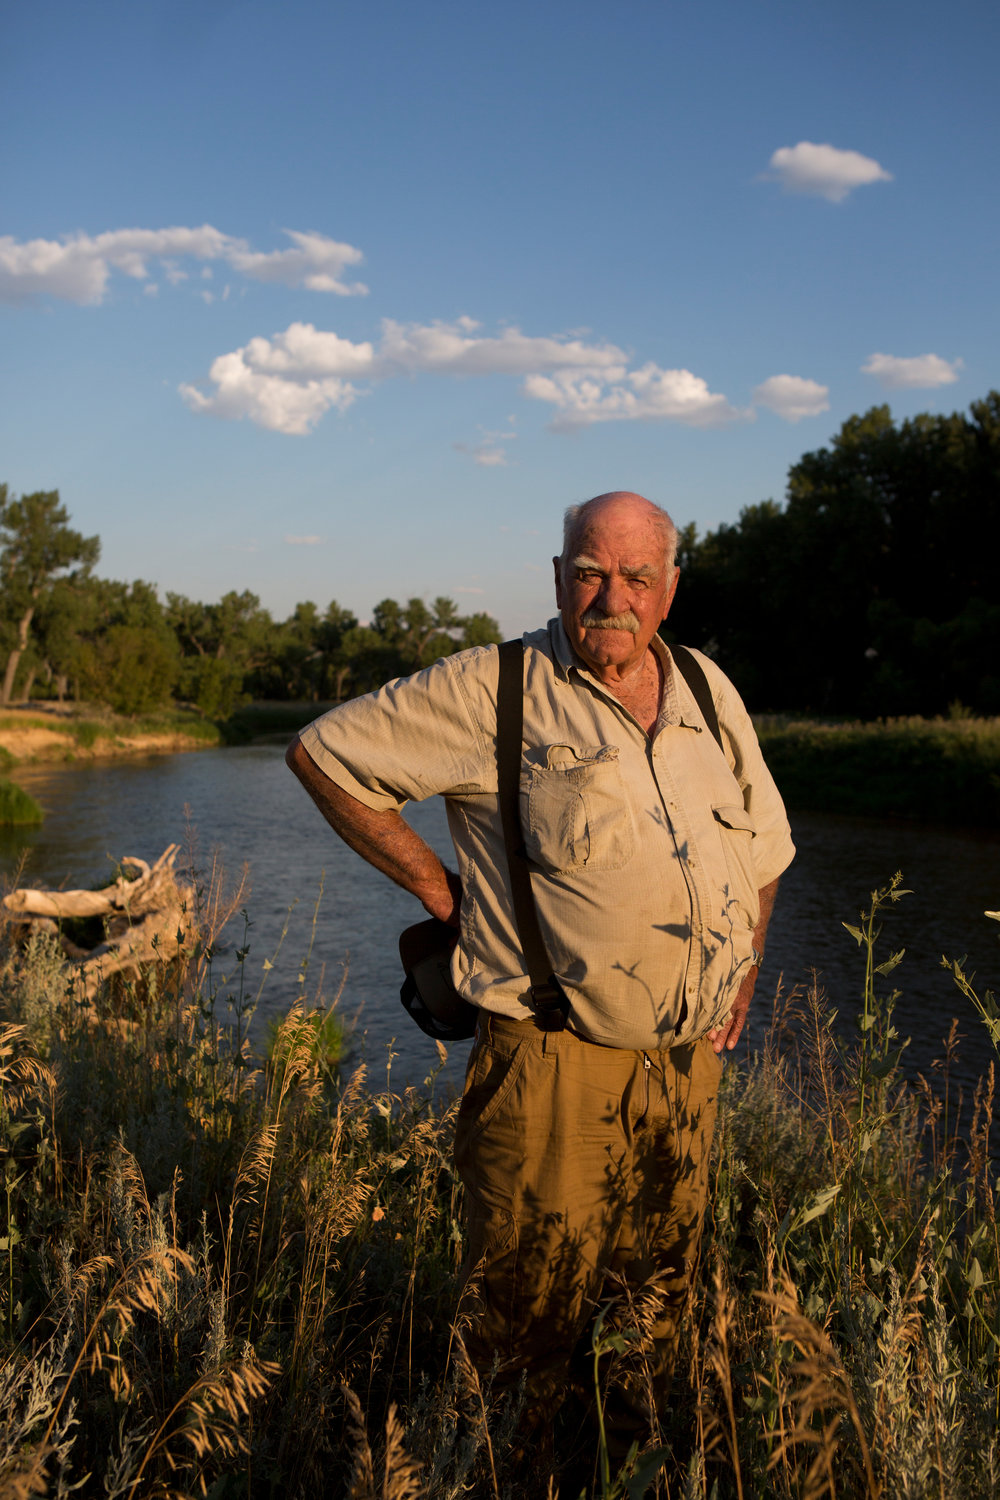 "Art Hayes, pictured here along the Tongue River near Birney, Montana, on his ranch that has been a part of his family since his great grandfather settled on the Three Circle ranch in 1886. ""I love that peace and quiet,"" Mr. Hayes explains about his love for being a steward of the land. ""It's my little piece of heaven and I'm going to fight for it. ""Even my great grandfather said, 'You're not going to make it without irrigation,'"" he recalls his father saying. ""It's just vital to us. We're here for the long run. It's (the land) is very productive. But it takes water."" Residents in Montana's coal country debate the benefits natural resource extraction brings to the region with the damaging effects of water contamination. While the high-paying jobs brings much-needed prosperity to some of the area's communities, the presence of coal mining some argue threatens the livelihood of those who depend on clean water for agriculture. (Kristina Barker for The New York Times)"